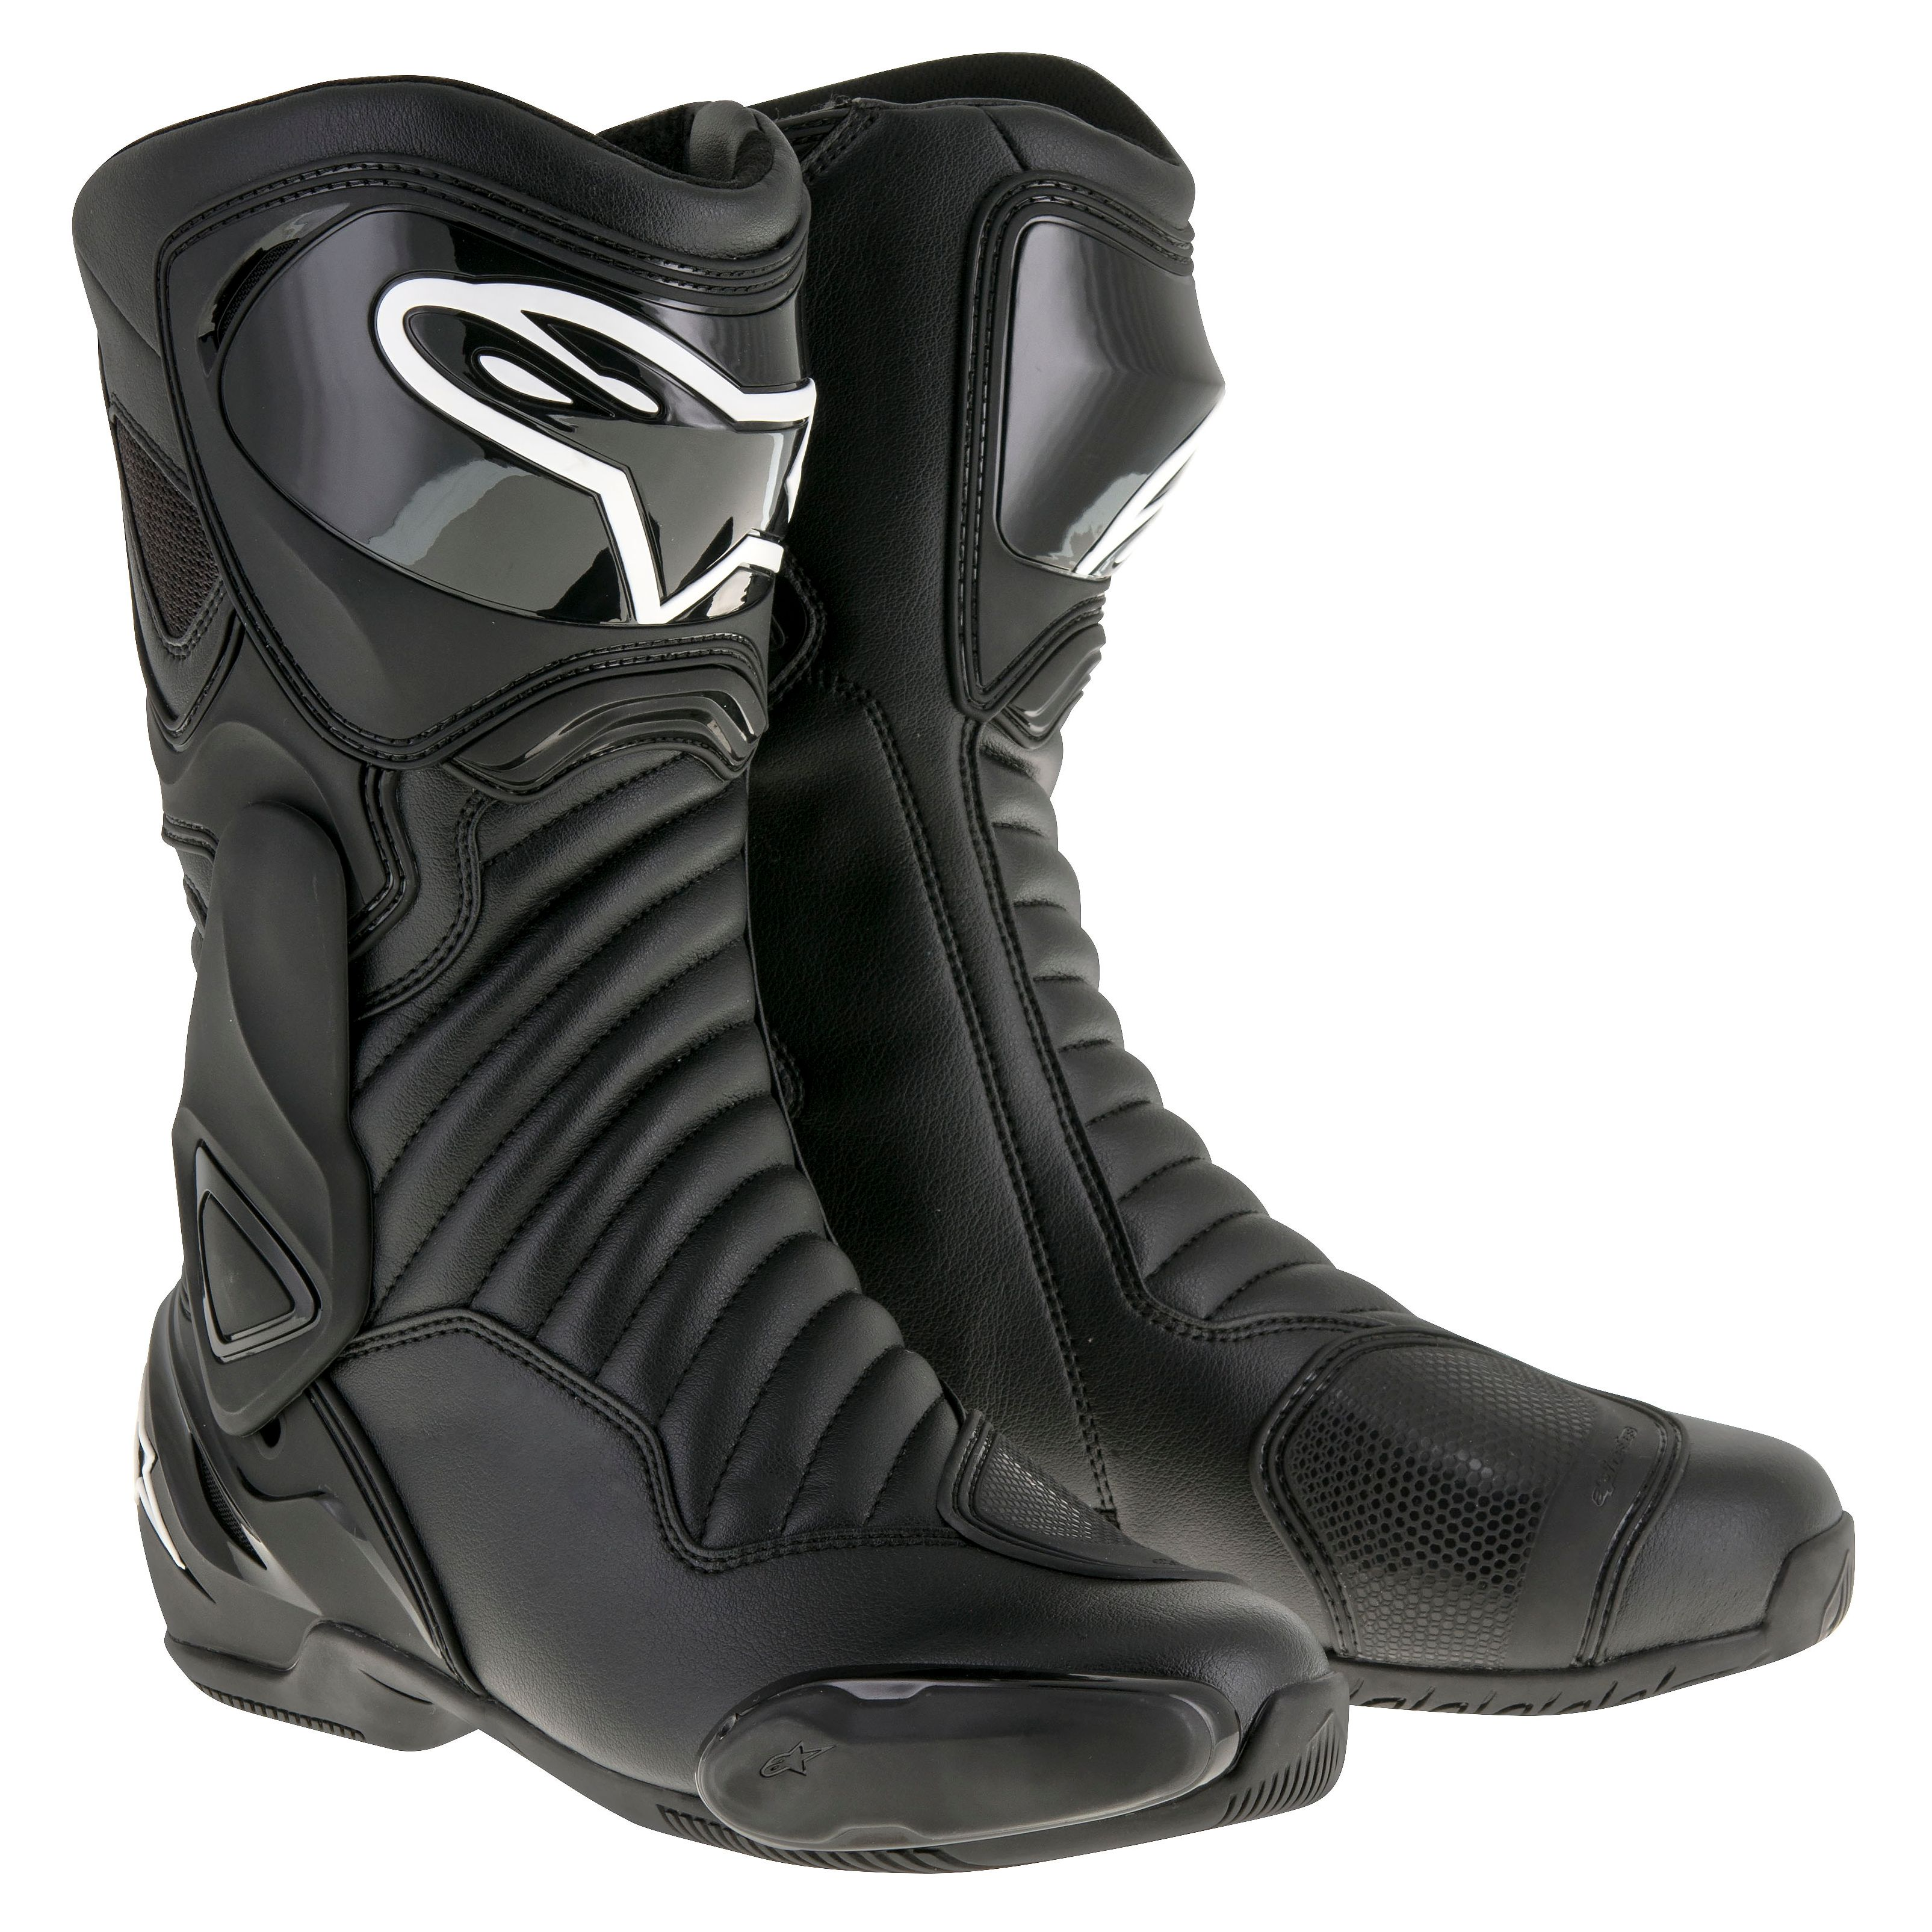 bottes alpinestars smx 6 v2 bottes et chaussures. Black Bedroom Furniture Sets. Home Design Ideas